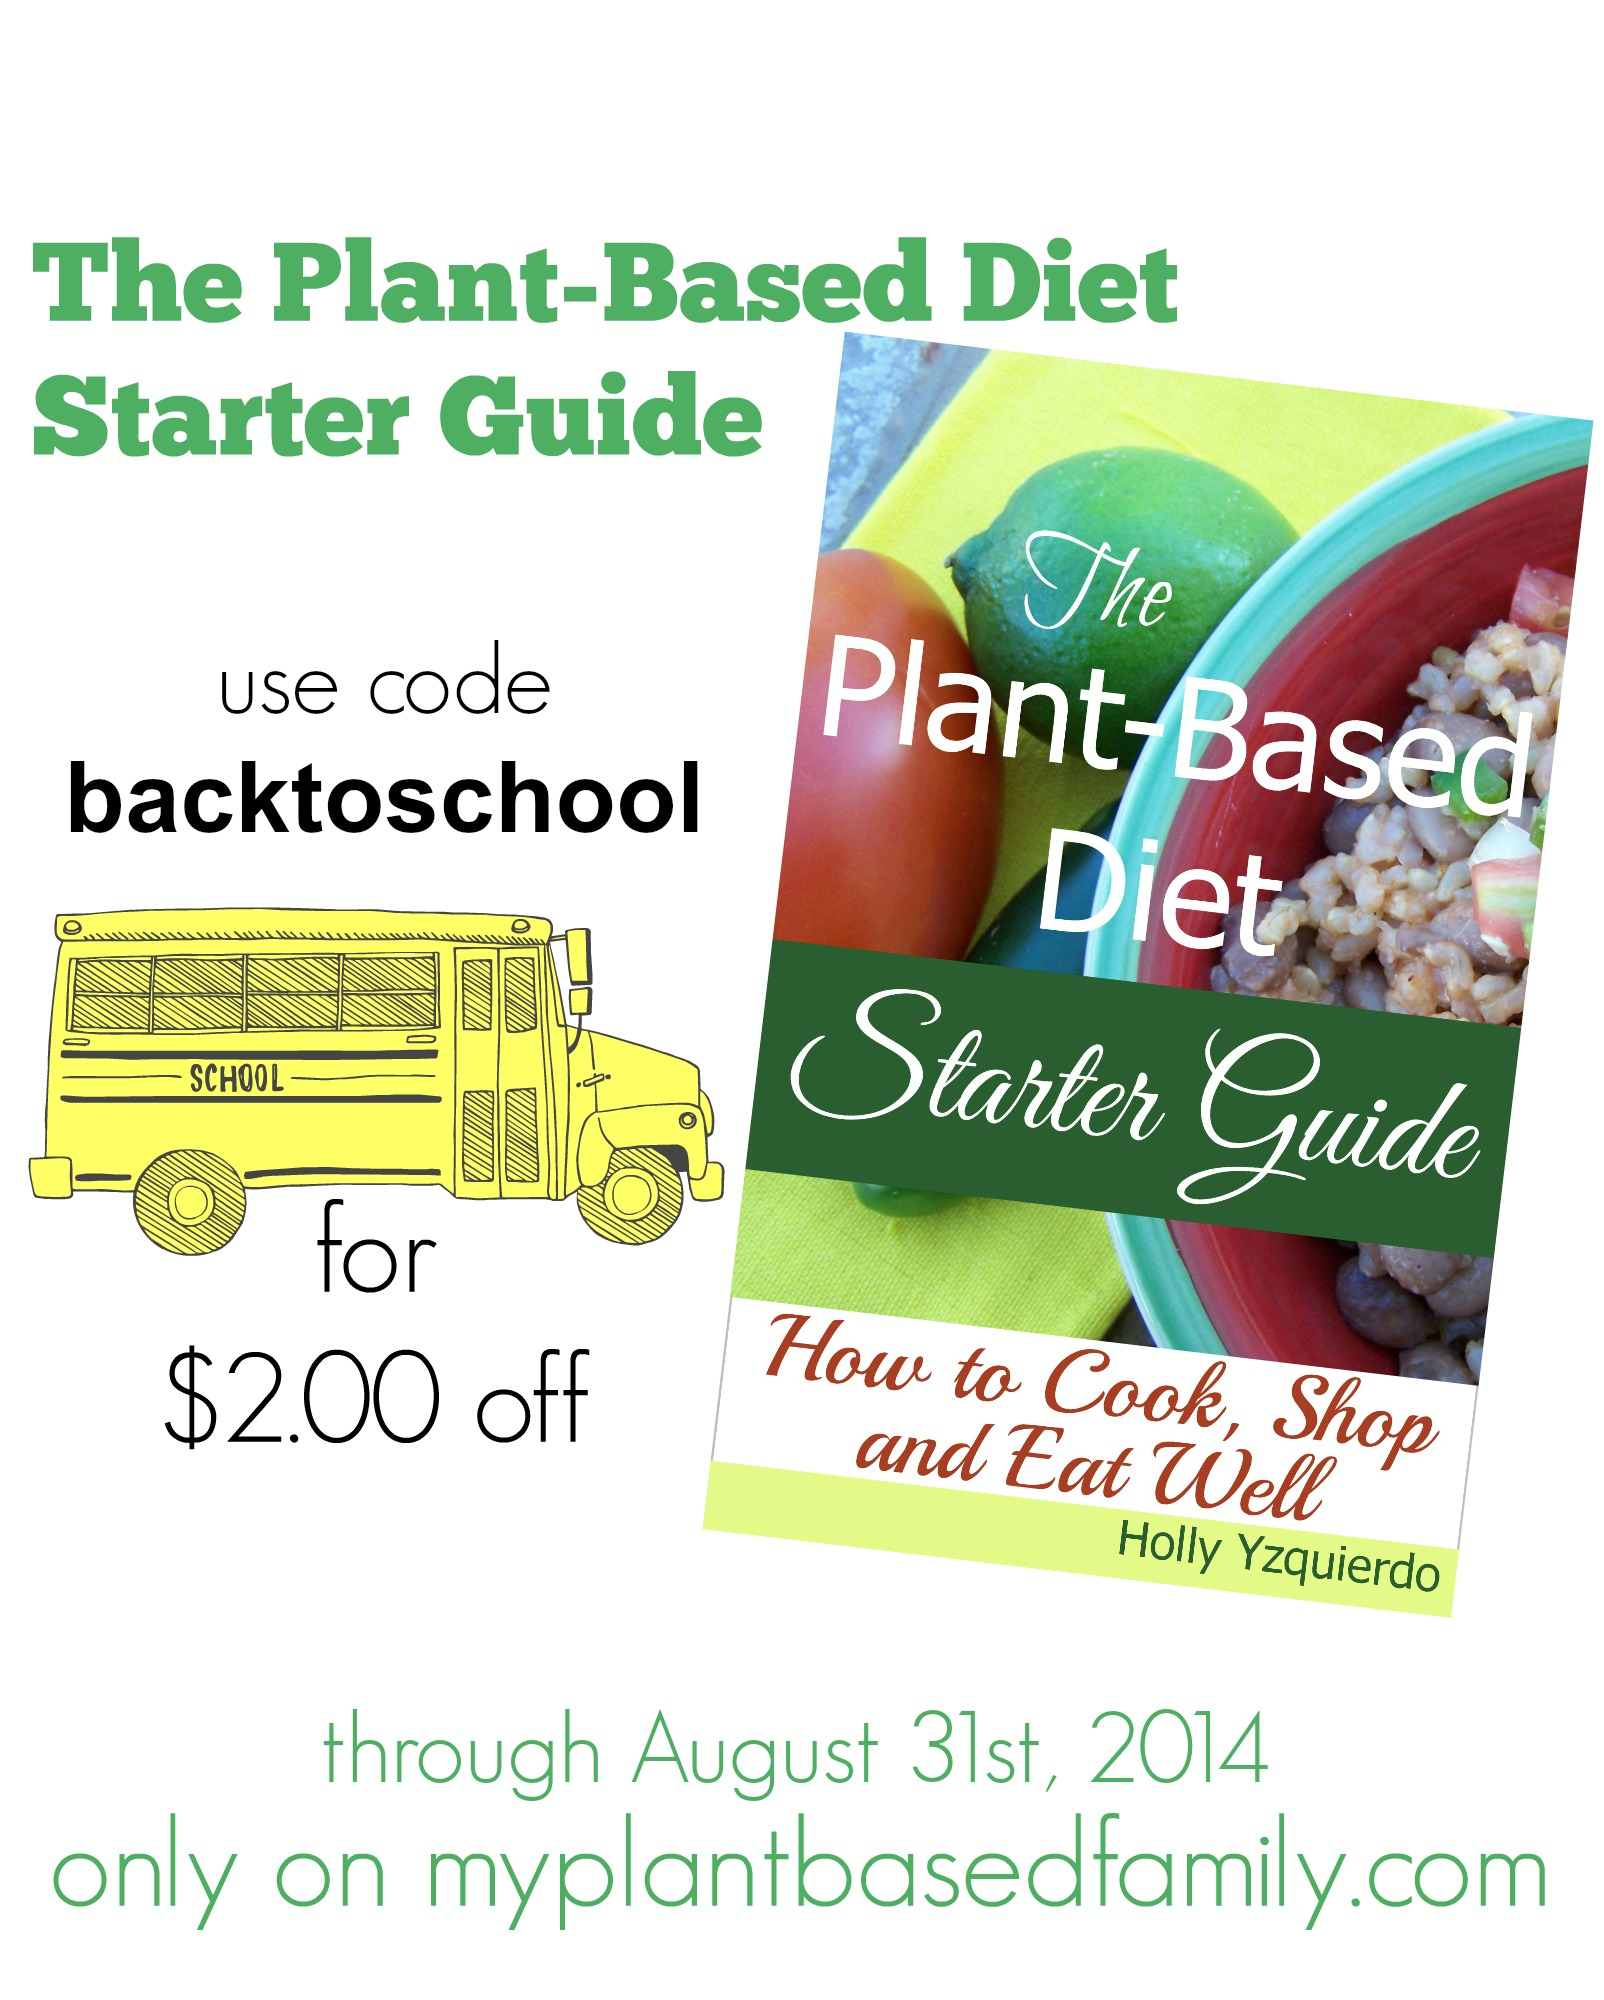 The Plant-Based Diet Starter Guide: How to Cook, Shop and Eat Well is $2 off during August